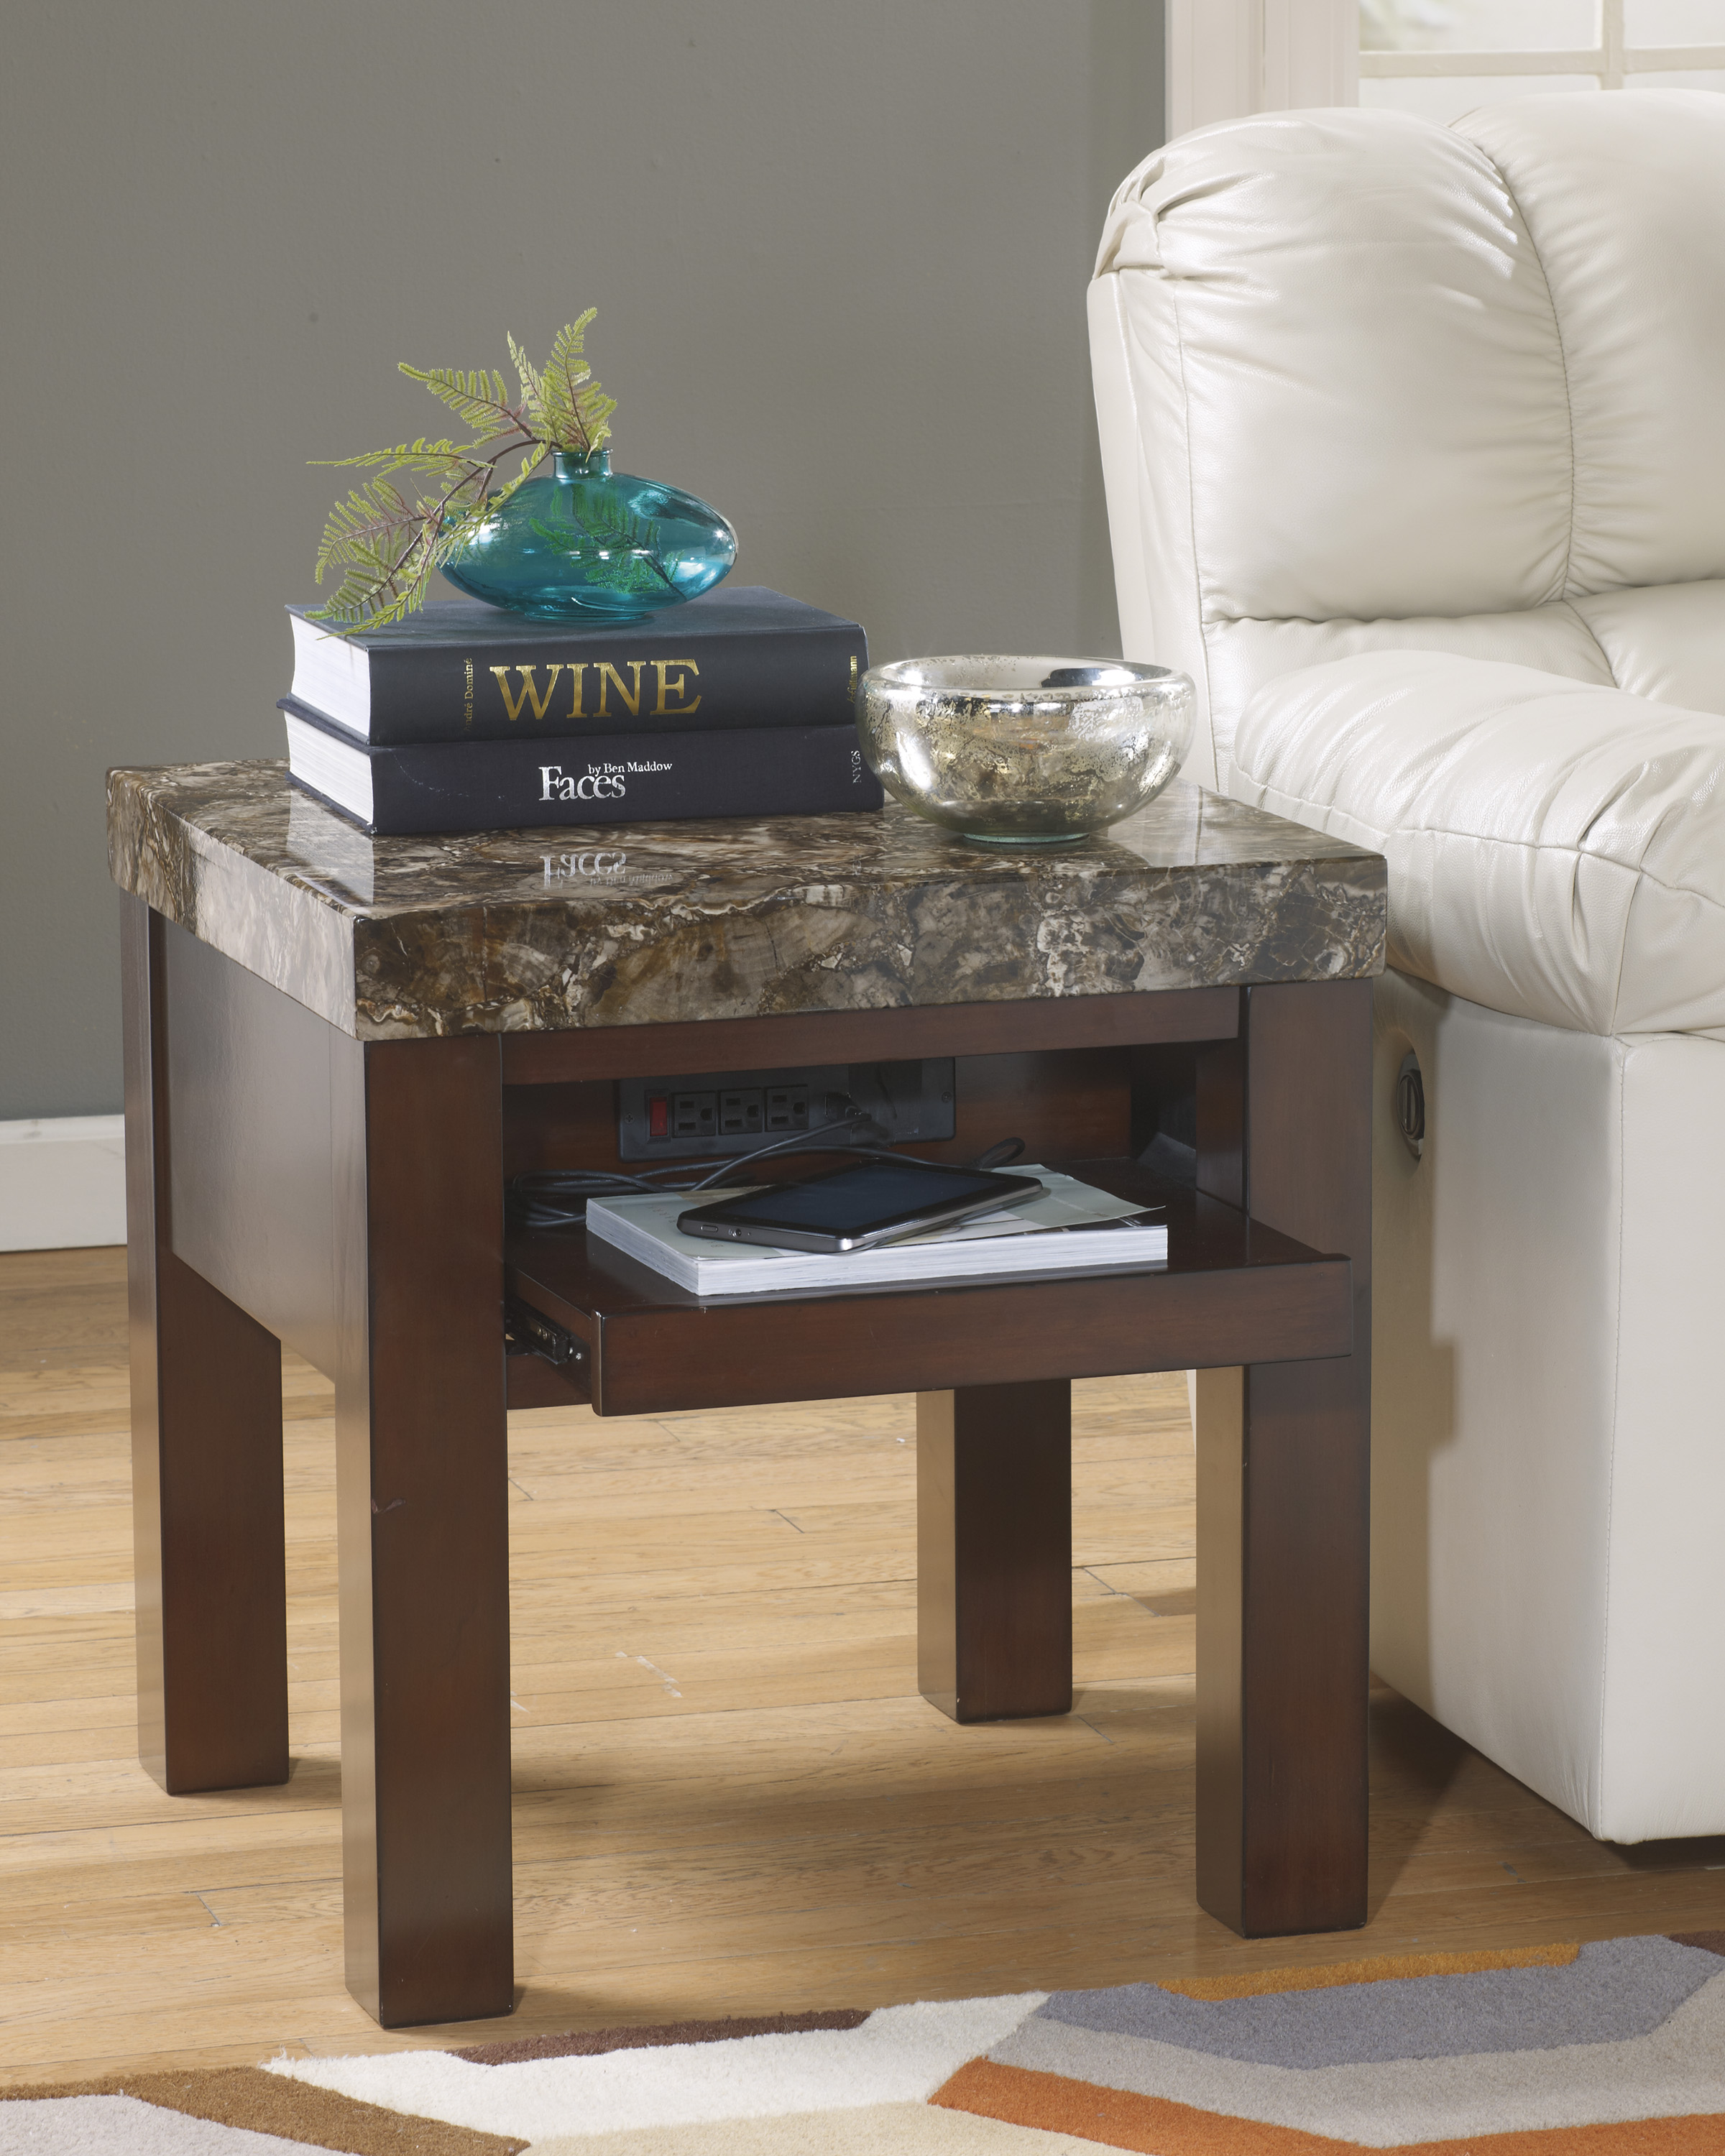 Marble Top Coffee Table Craigslist: Occasional Tables Rental In Pennsylvania